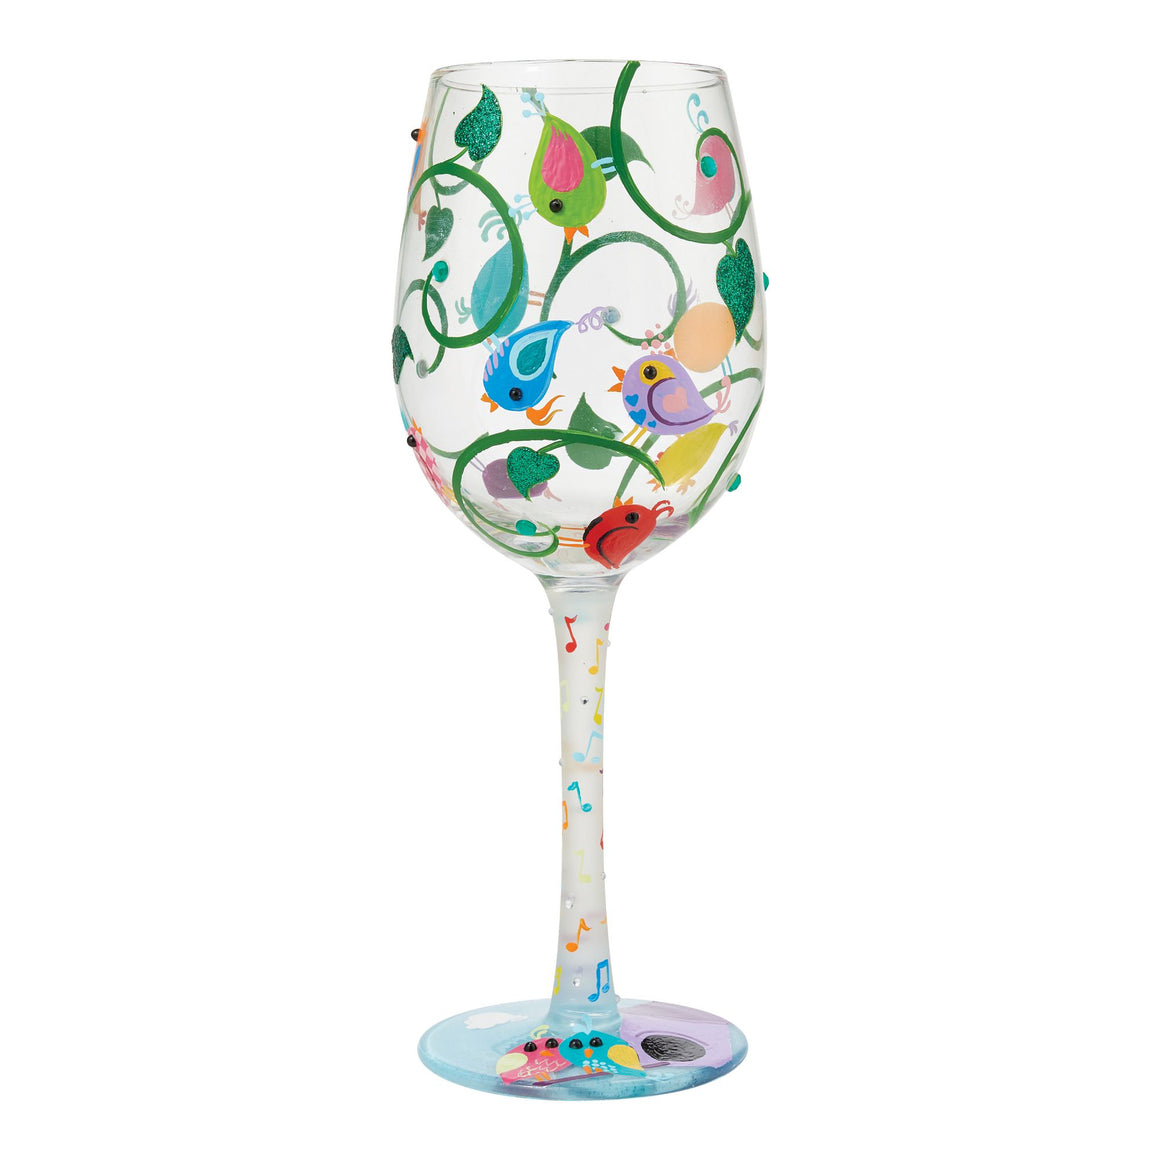 Song Bird Wine Glass